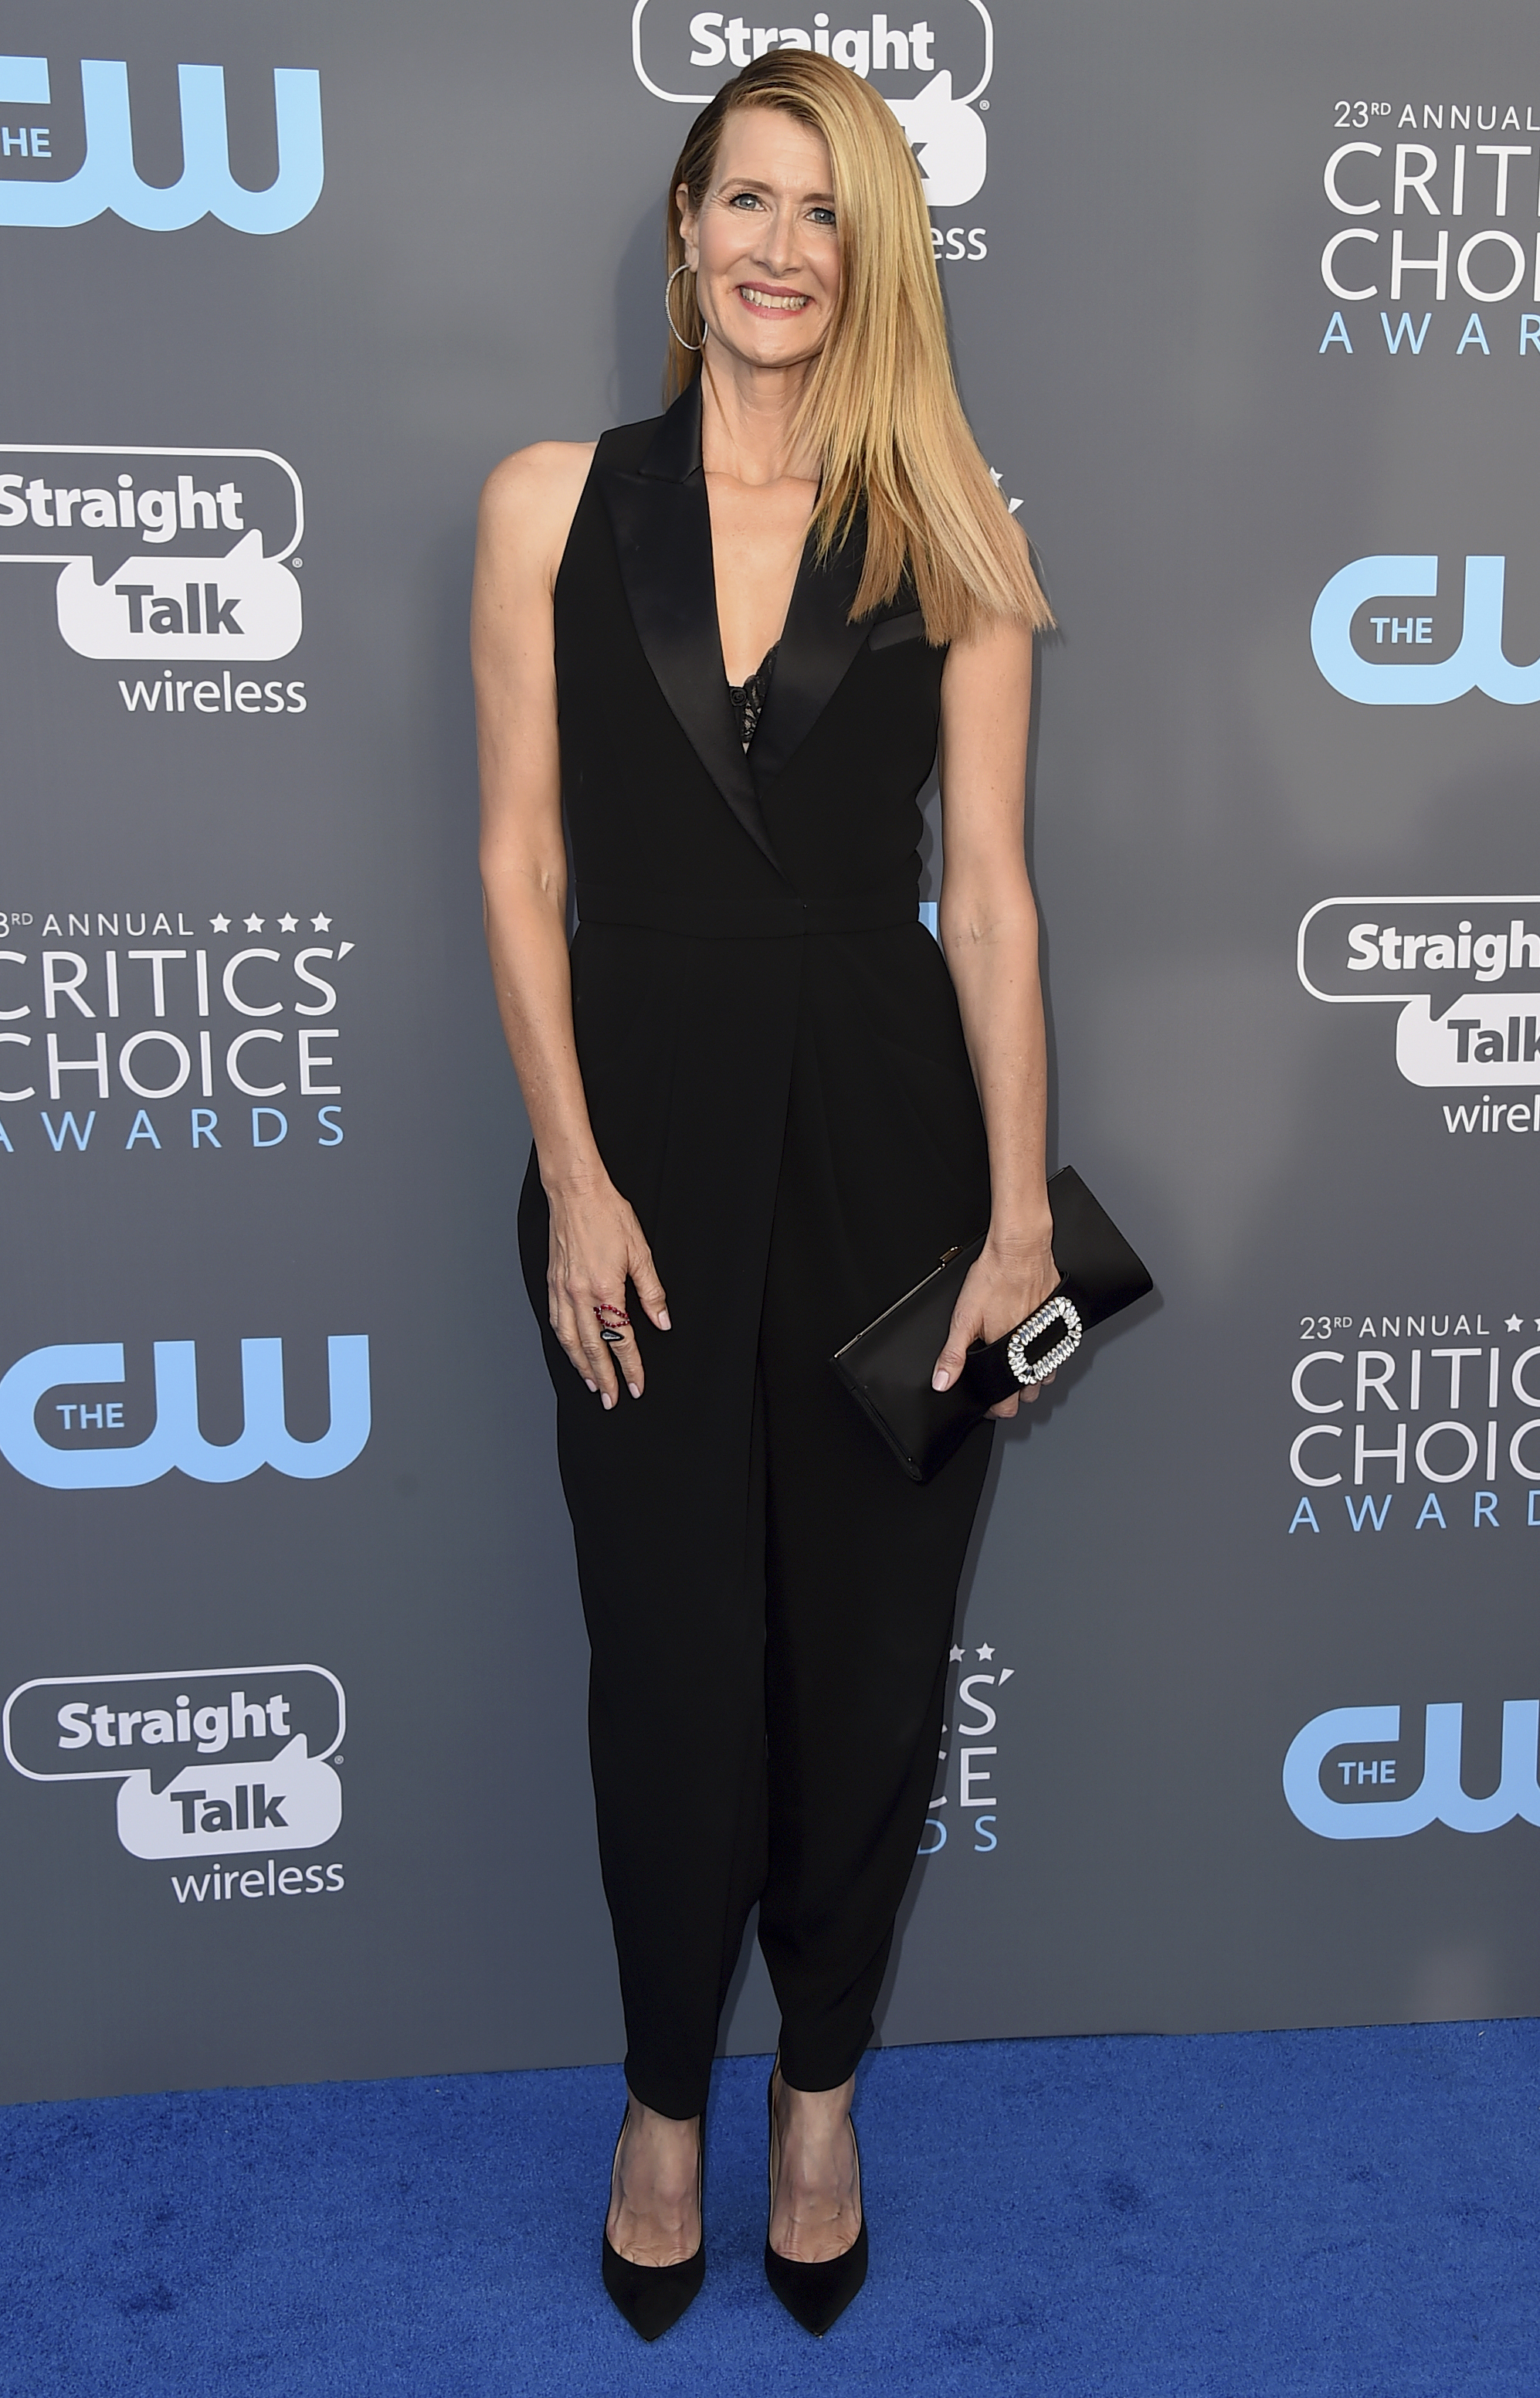 <div class='meta'><div class='origin-logo' data-origin='AP'></div><span class='caption-text' data-credit='Jordan Strauss/Invision/AP'>Laura Dern arrives at the 23rd annual Critics' Choice Awards at the Barker Hangar on Thursday, Jan. 11, 2018, in Santa Monica, Calif.</span></div>